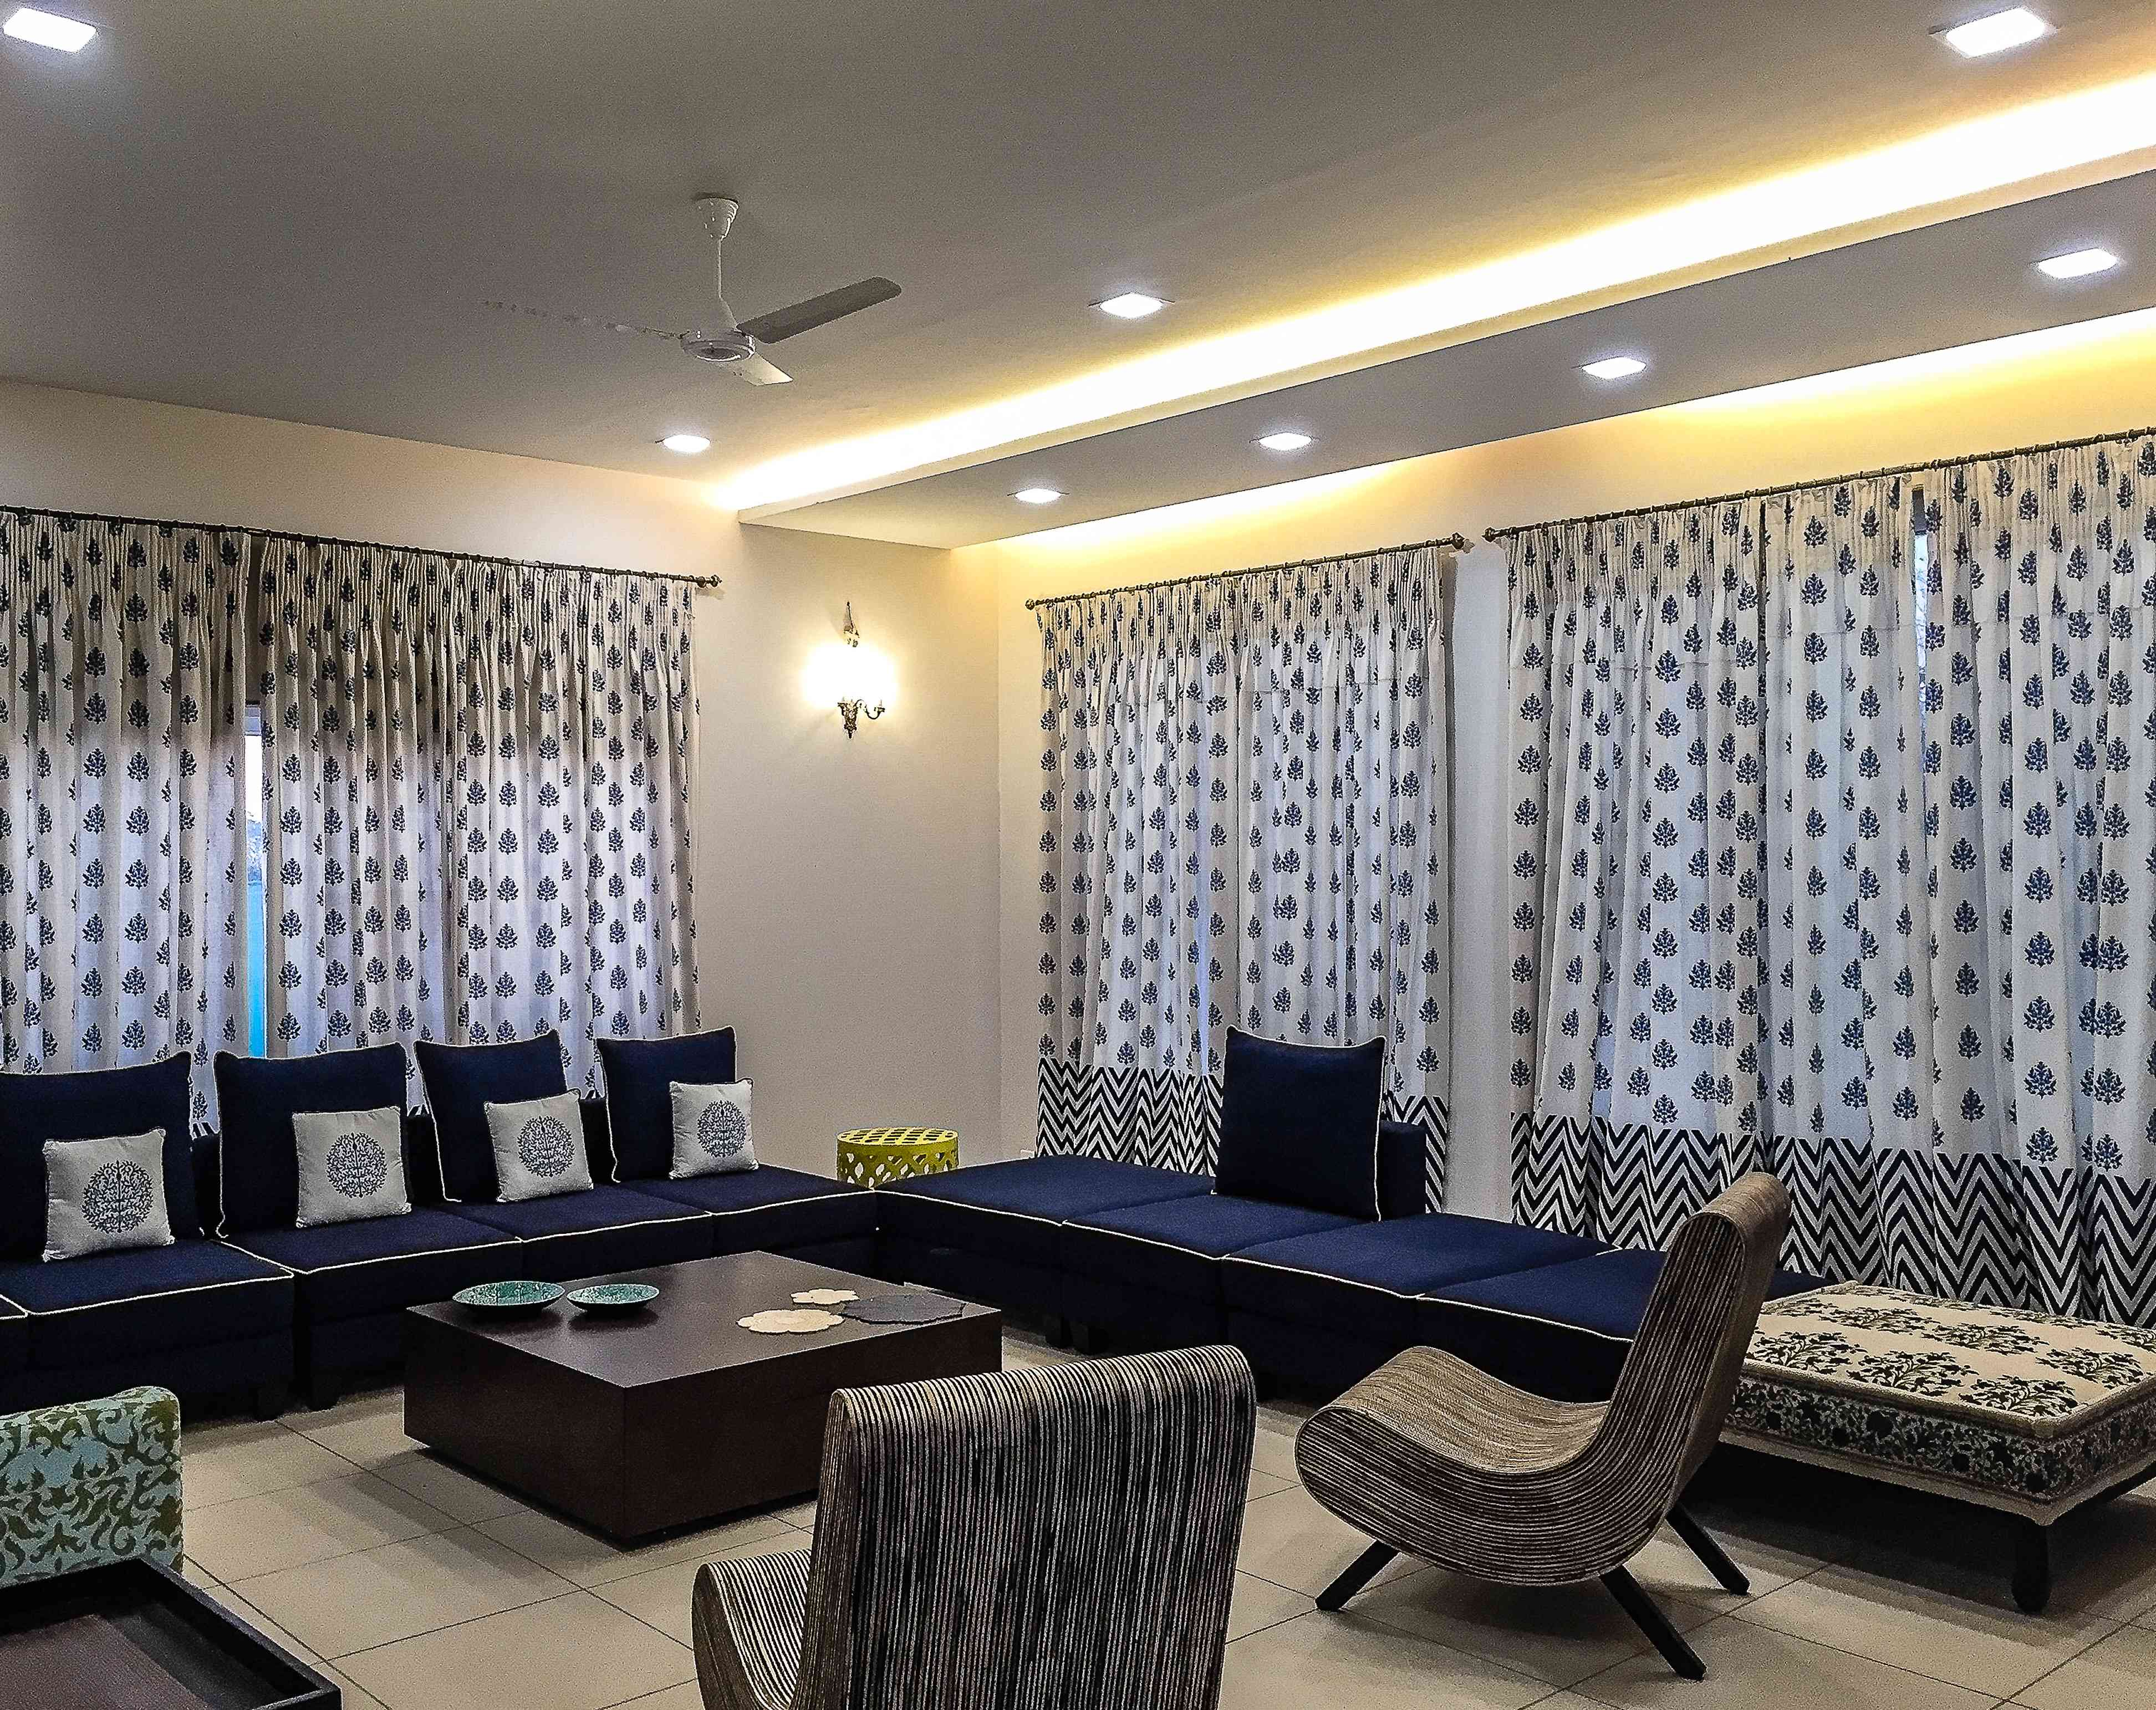 Drawing room interiors drawing room interior ideas - Latest curtains designs for living room ...